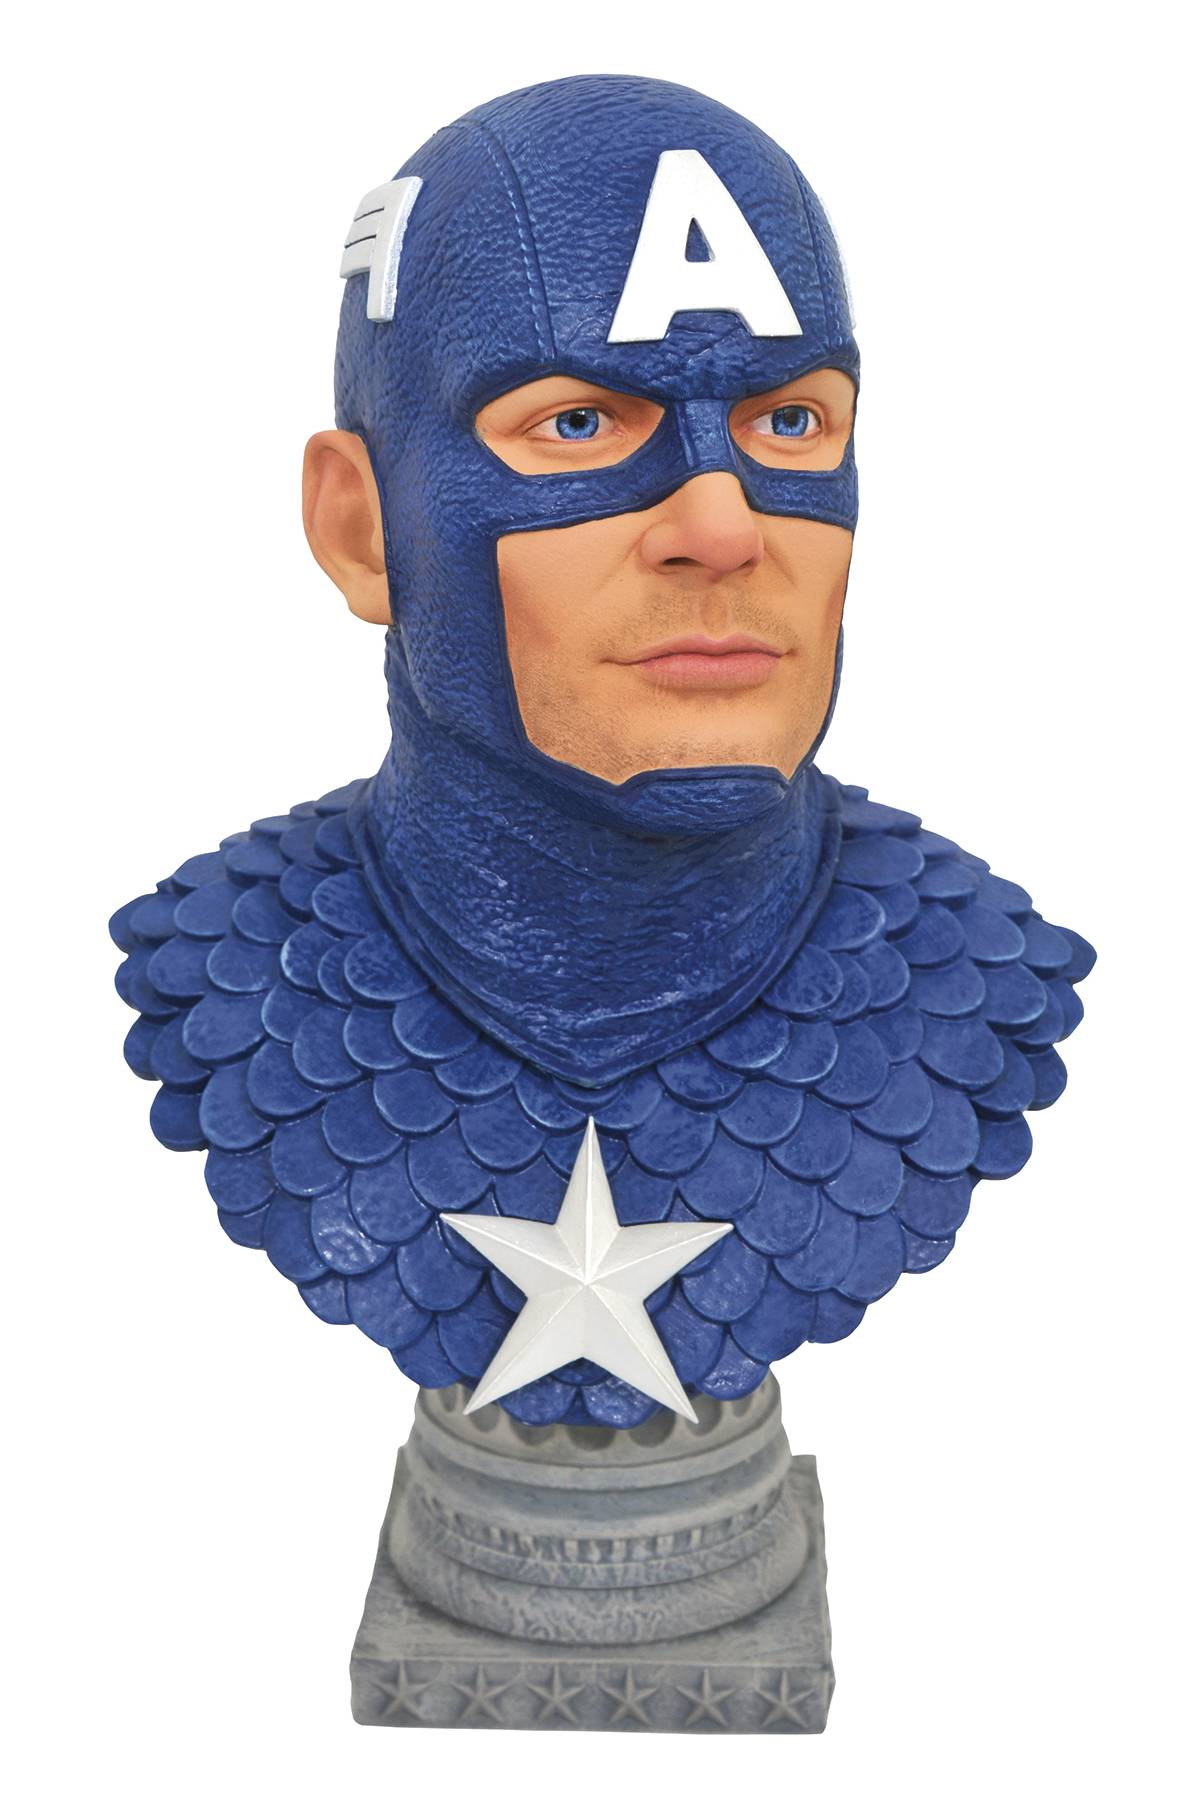 LEGENDS IN 3D MARVEL COMIC CAPTAIN AMERICA 1/2 SCALE BUST (C